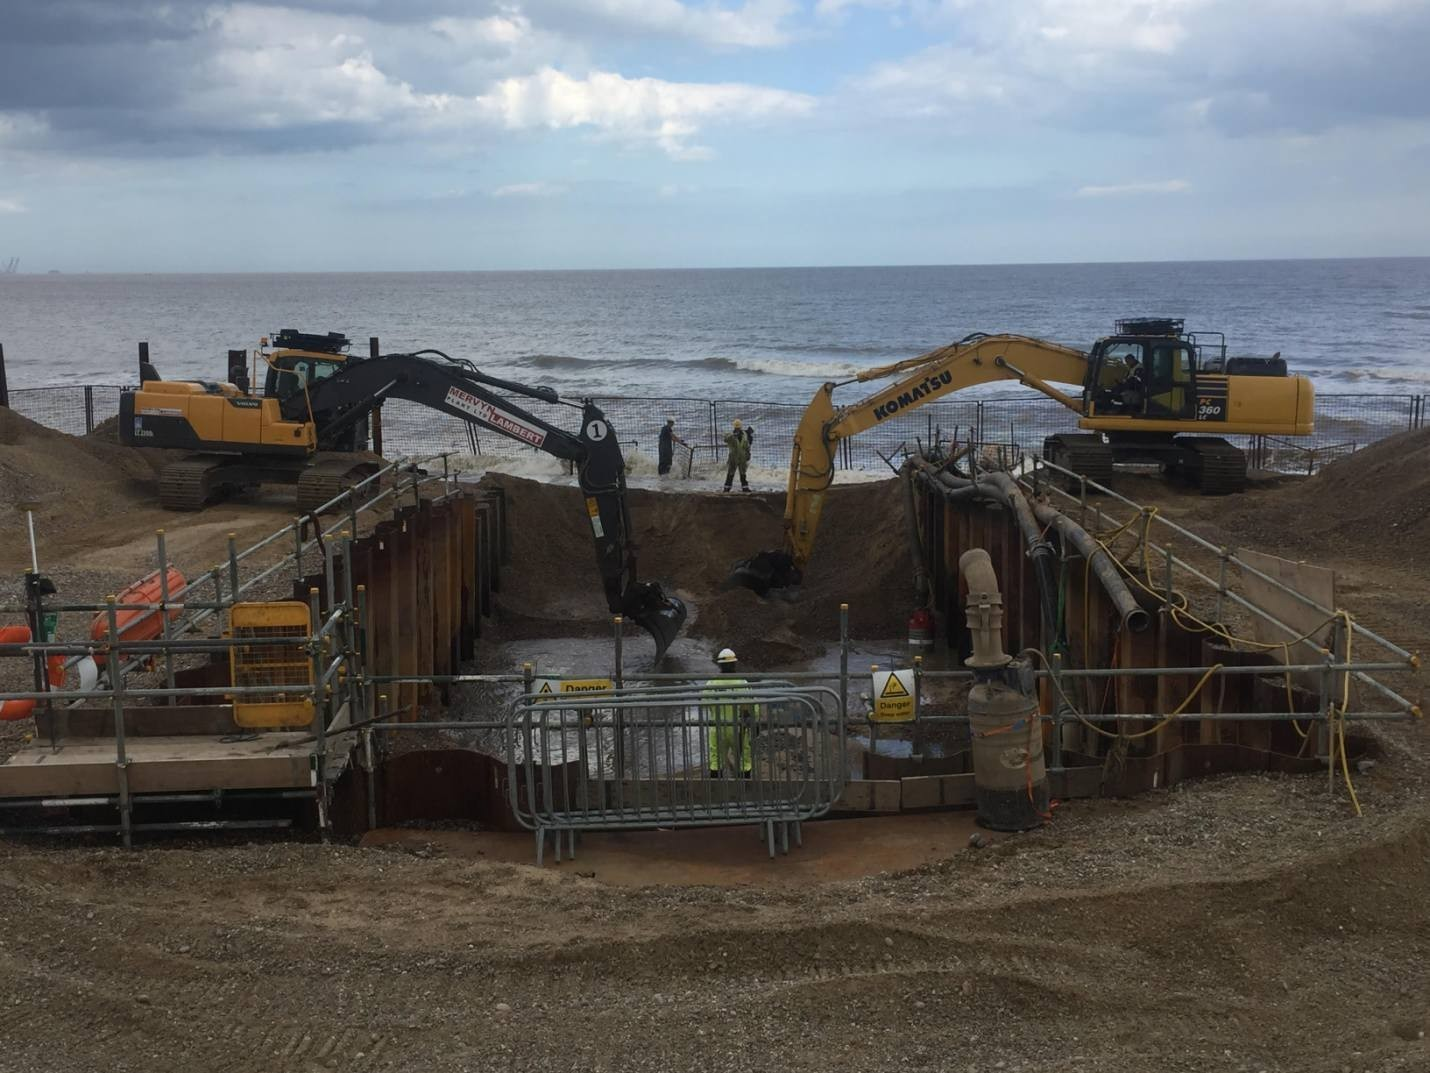 Figure 6 Excavators chasing the outgoing tide